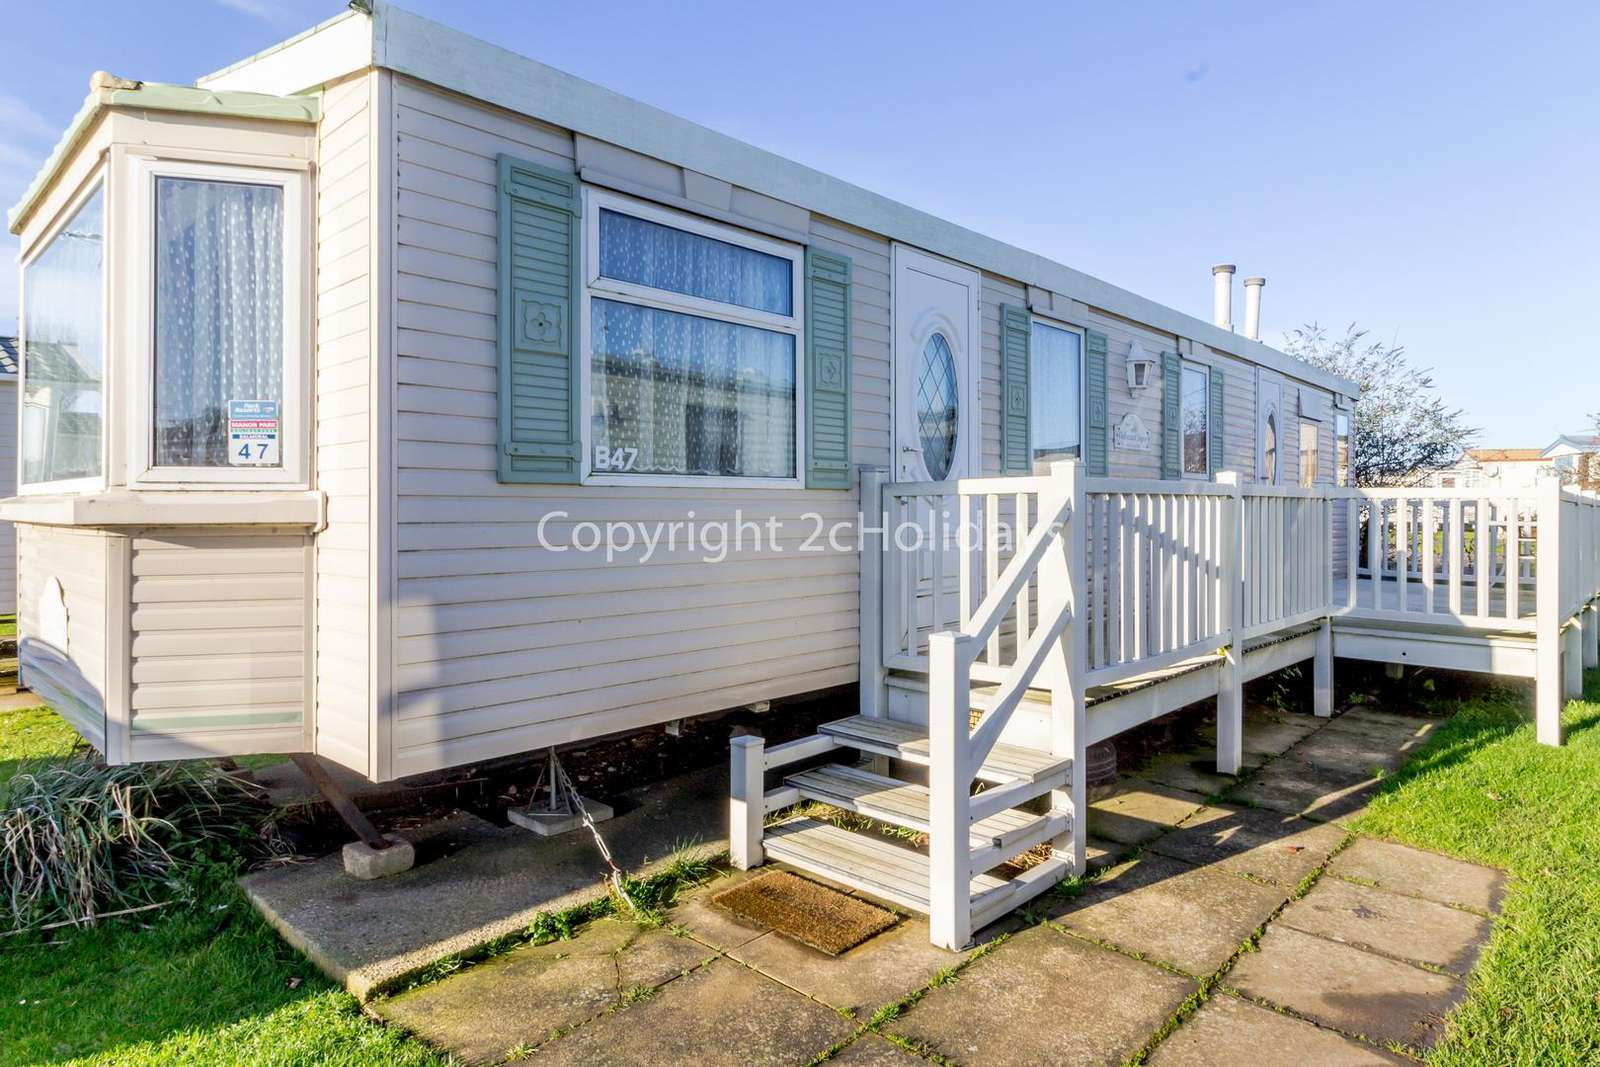 Great caravan with decking and outside furniture to enjoy the sunshine